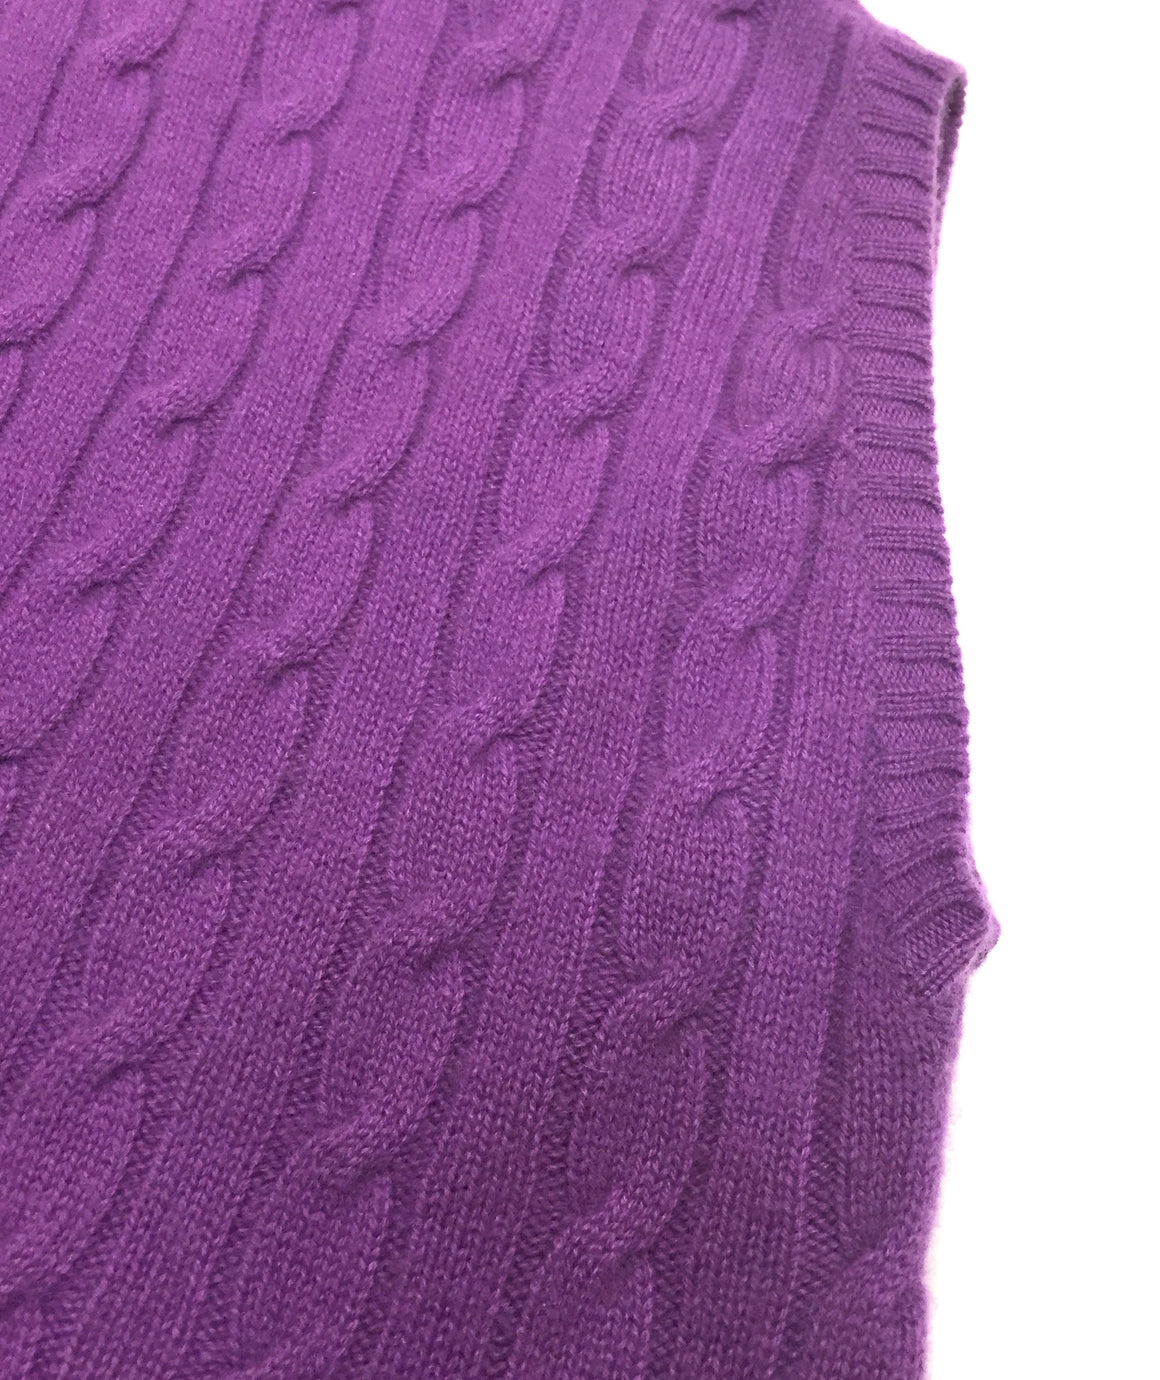 bisbiz.com RALPH LAUREN    New with Tags Orchid-Purple Cable-Knit Cashmere Cap-Sleeve V-Neck Sweater Top Size: Large - Bis Luxury Resale